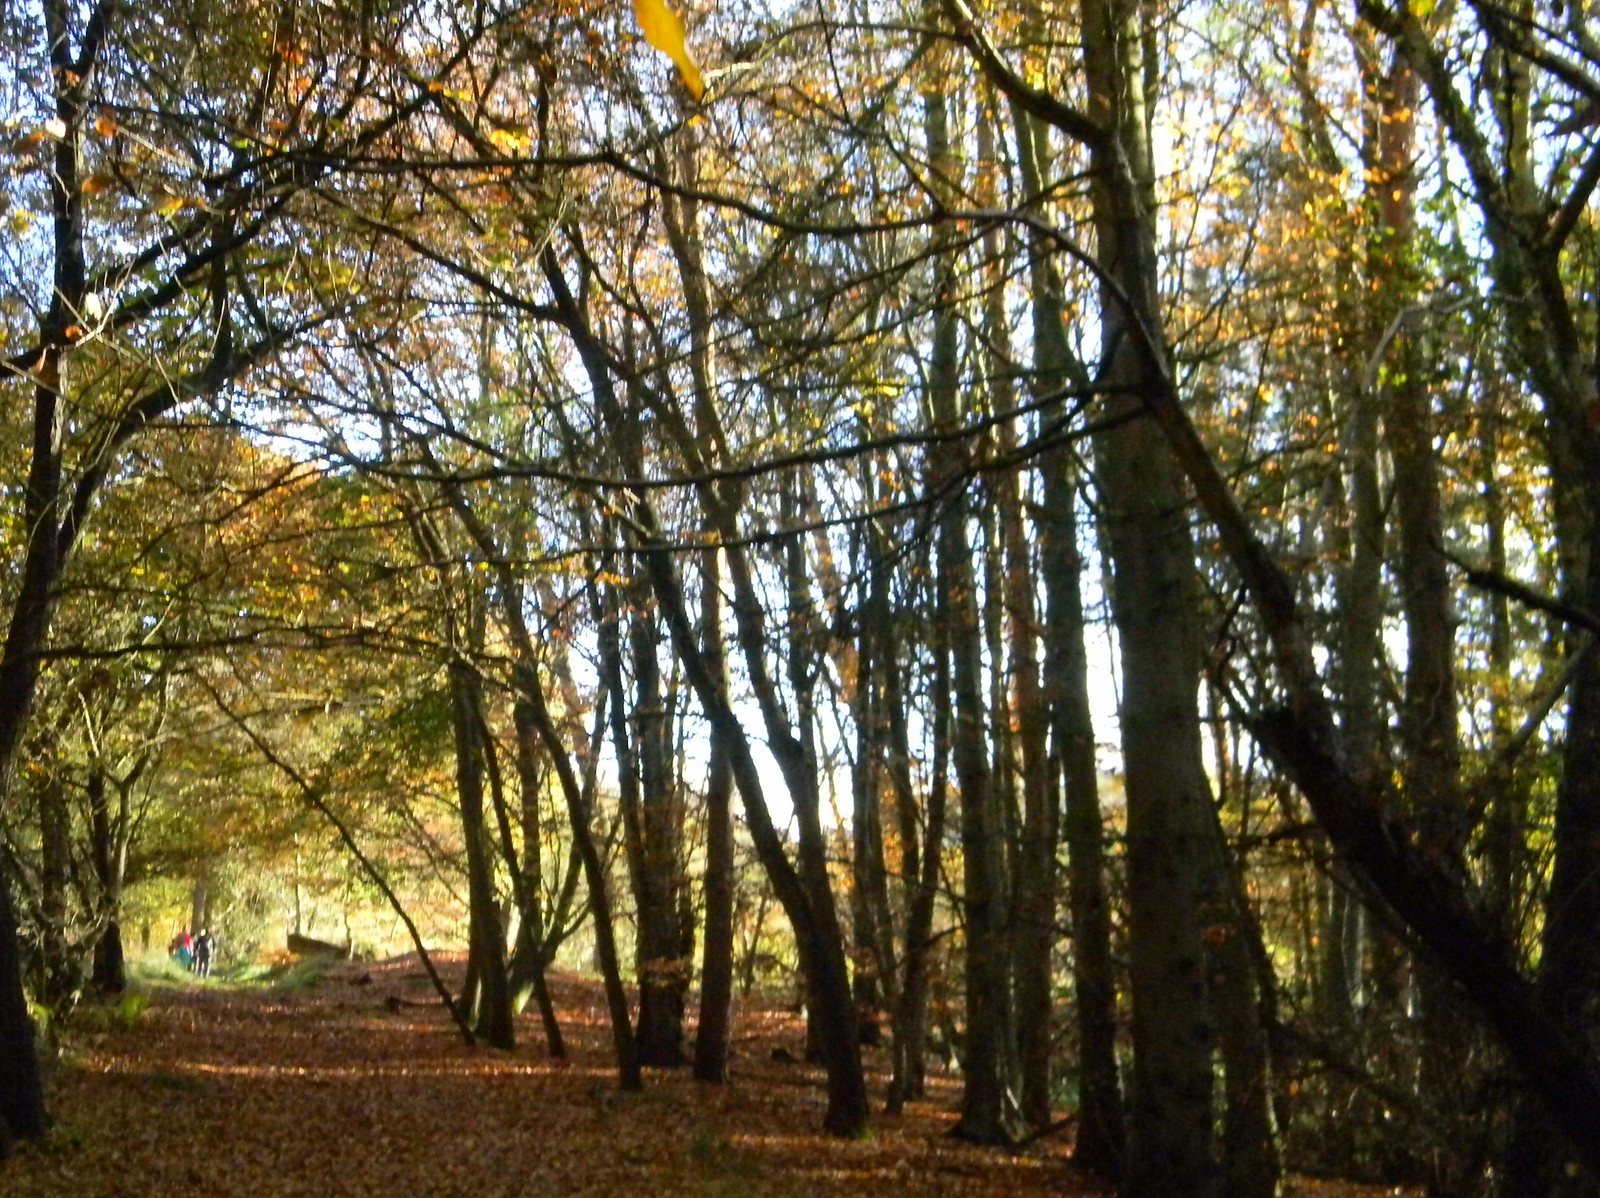 Autumn in Back Wood Bow Brickhill to Leighton Buzzard